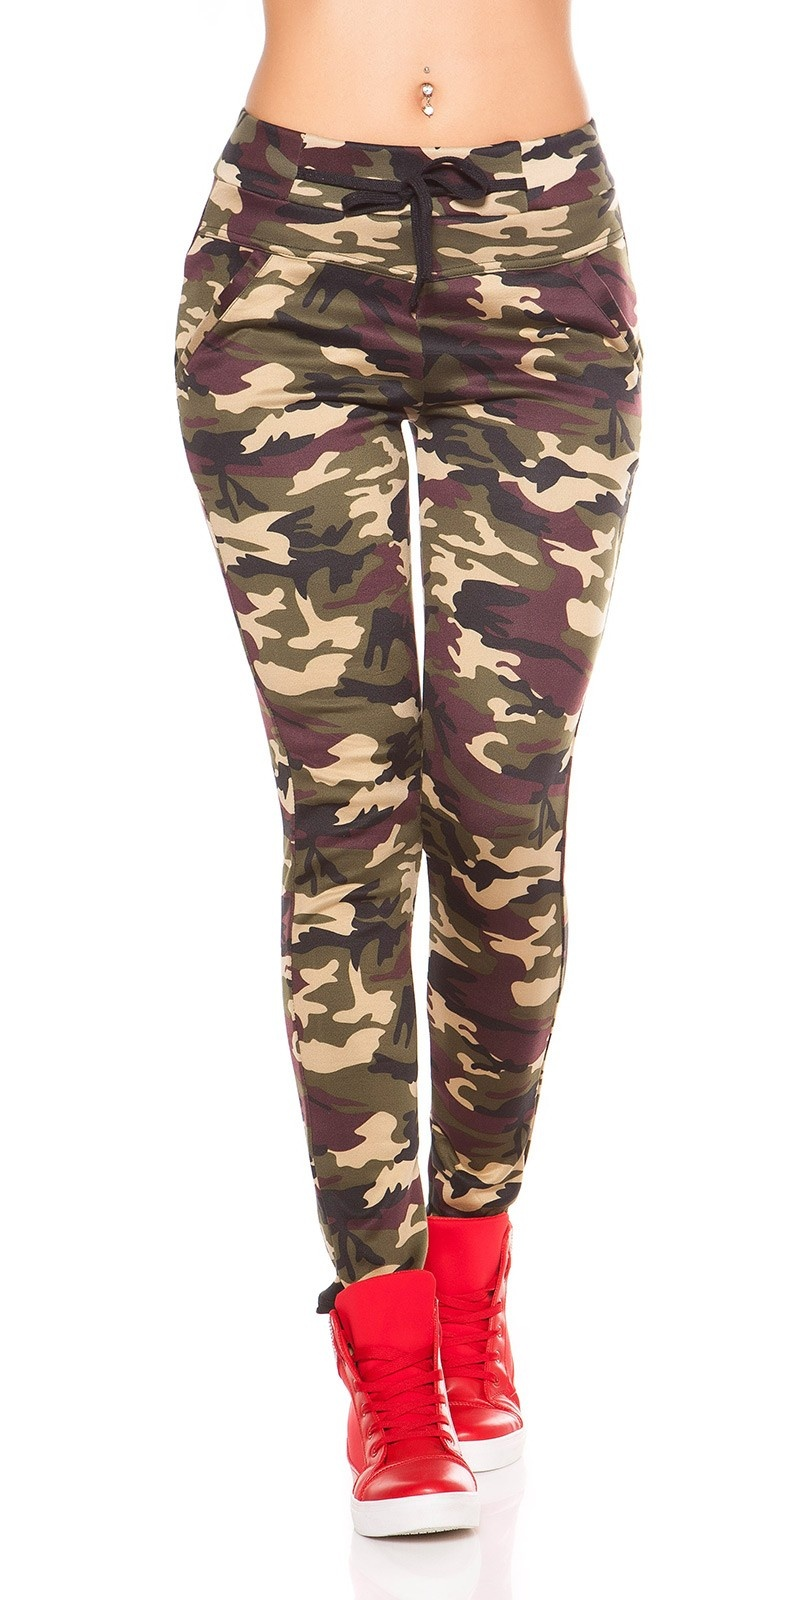 Sexy leggings in camouflage beige